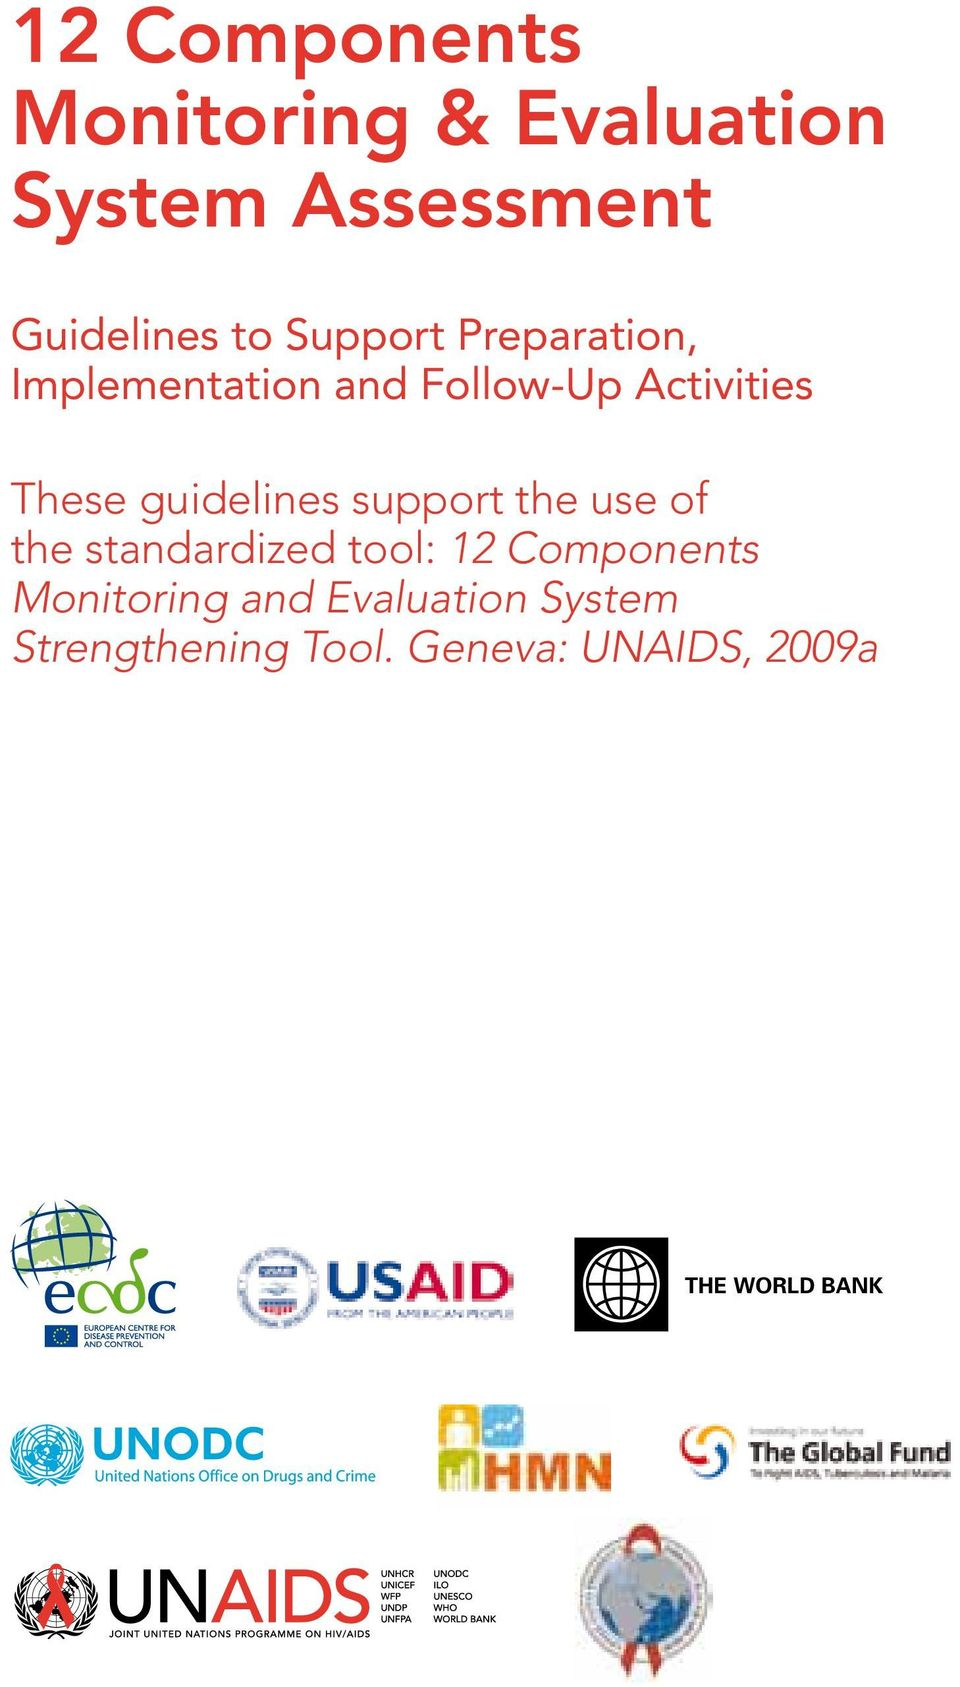 guidelines support the use of the standardized tool: 12 Components